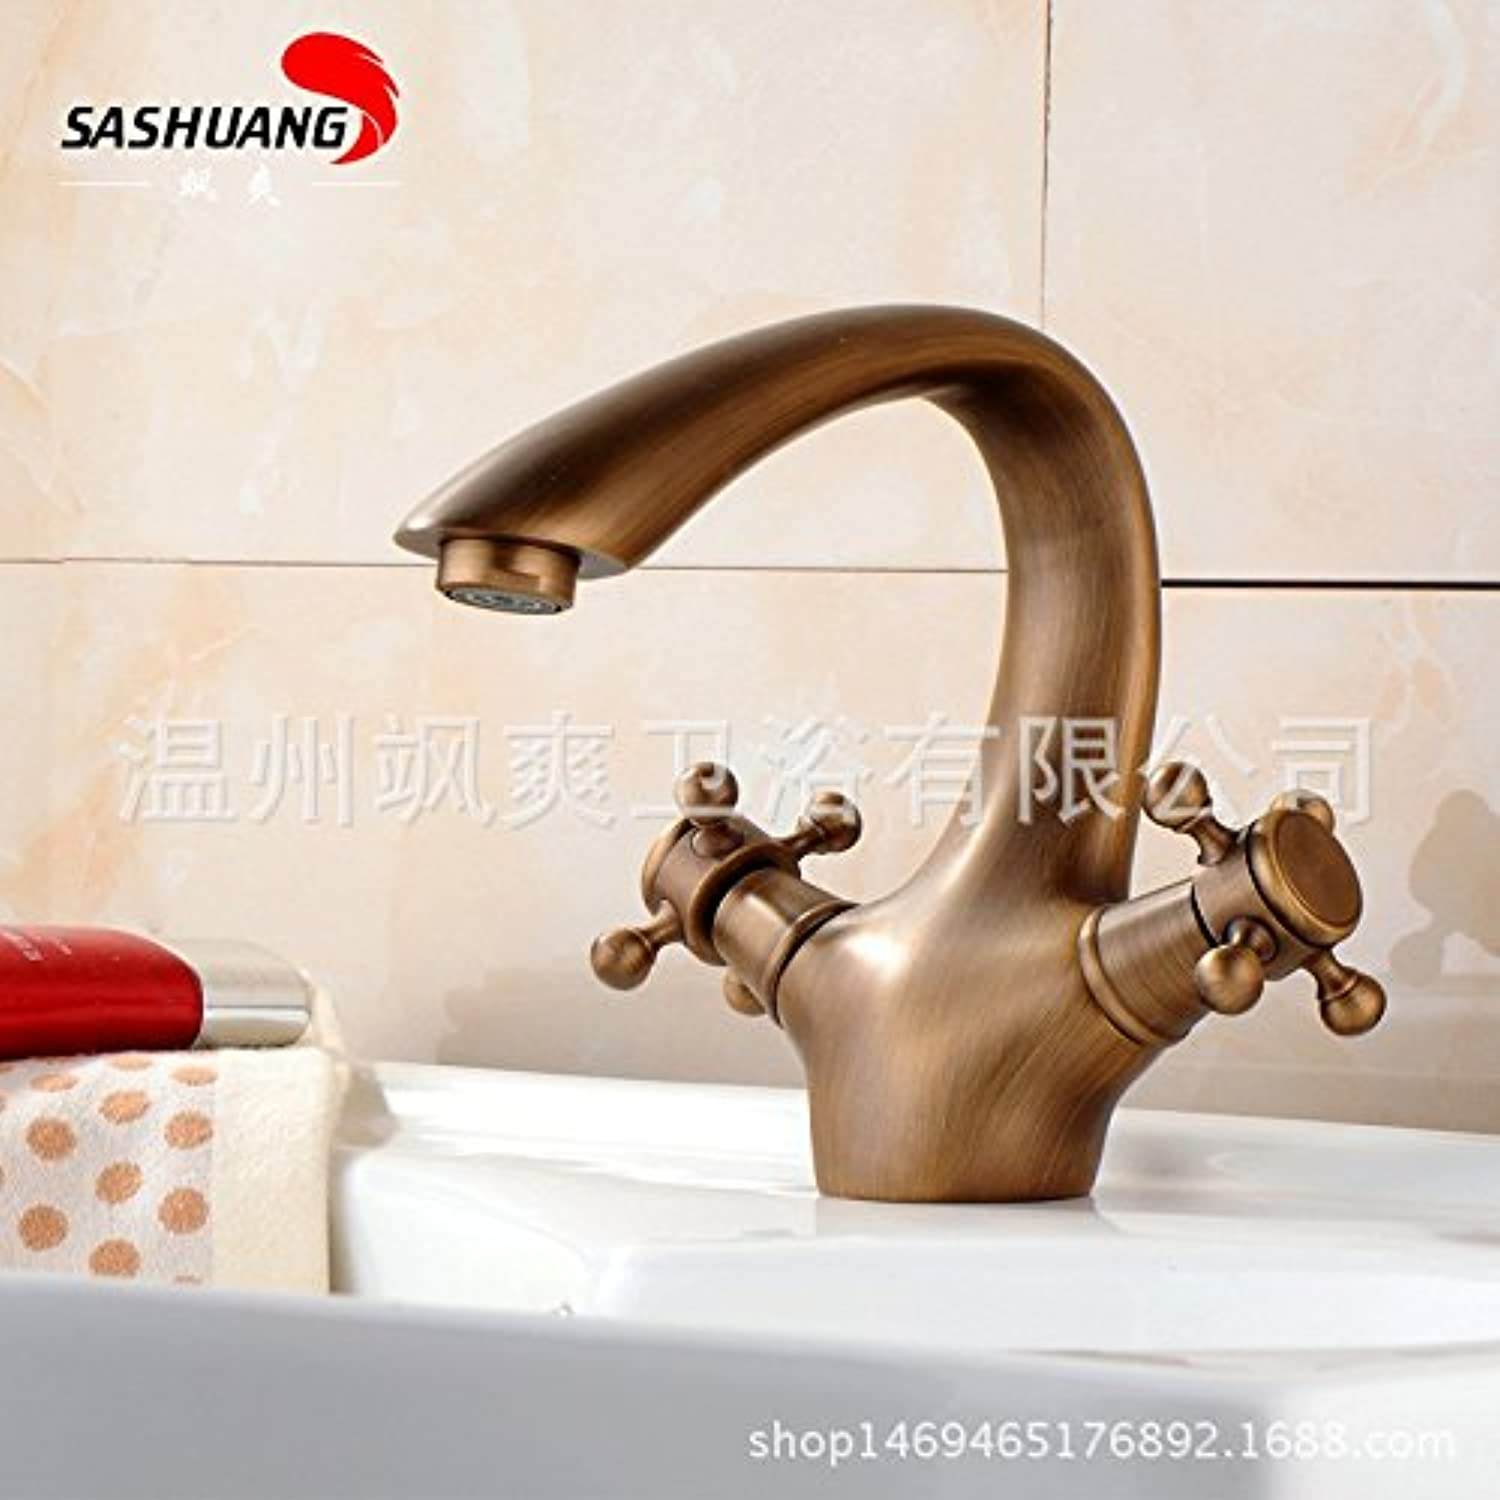 SADASD European Style Bathroom Basin Faucet Copper Antique Double Handle Flat Mouth Washbasin Sink Taps Ceramic Valve Hot and Cold Mixer Tap With G1 2 Hose